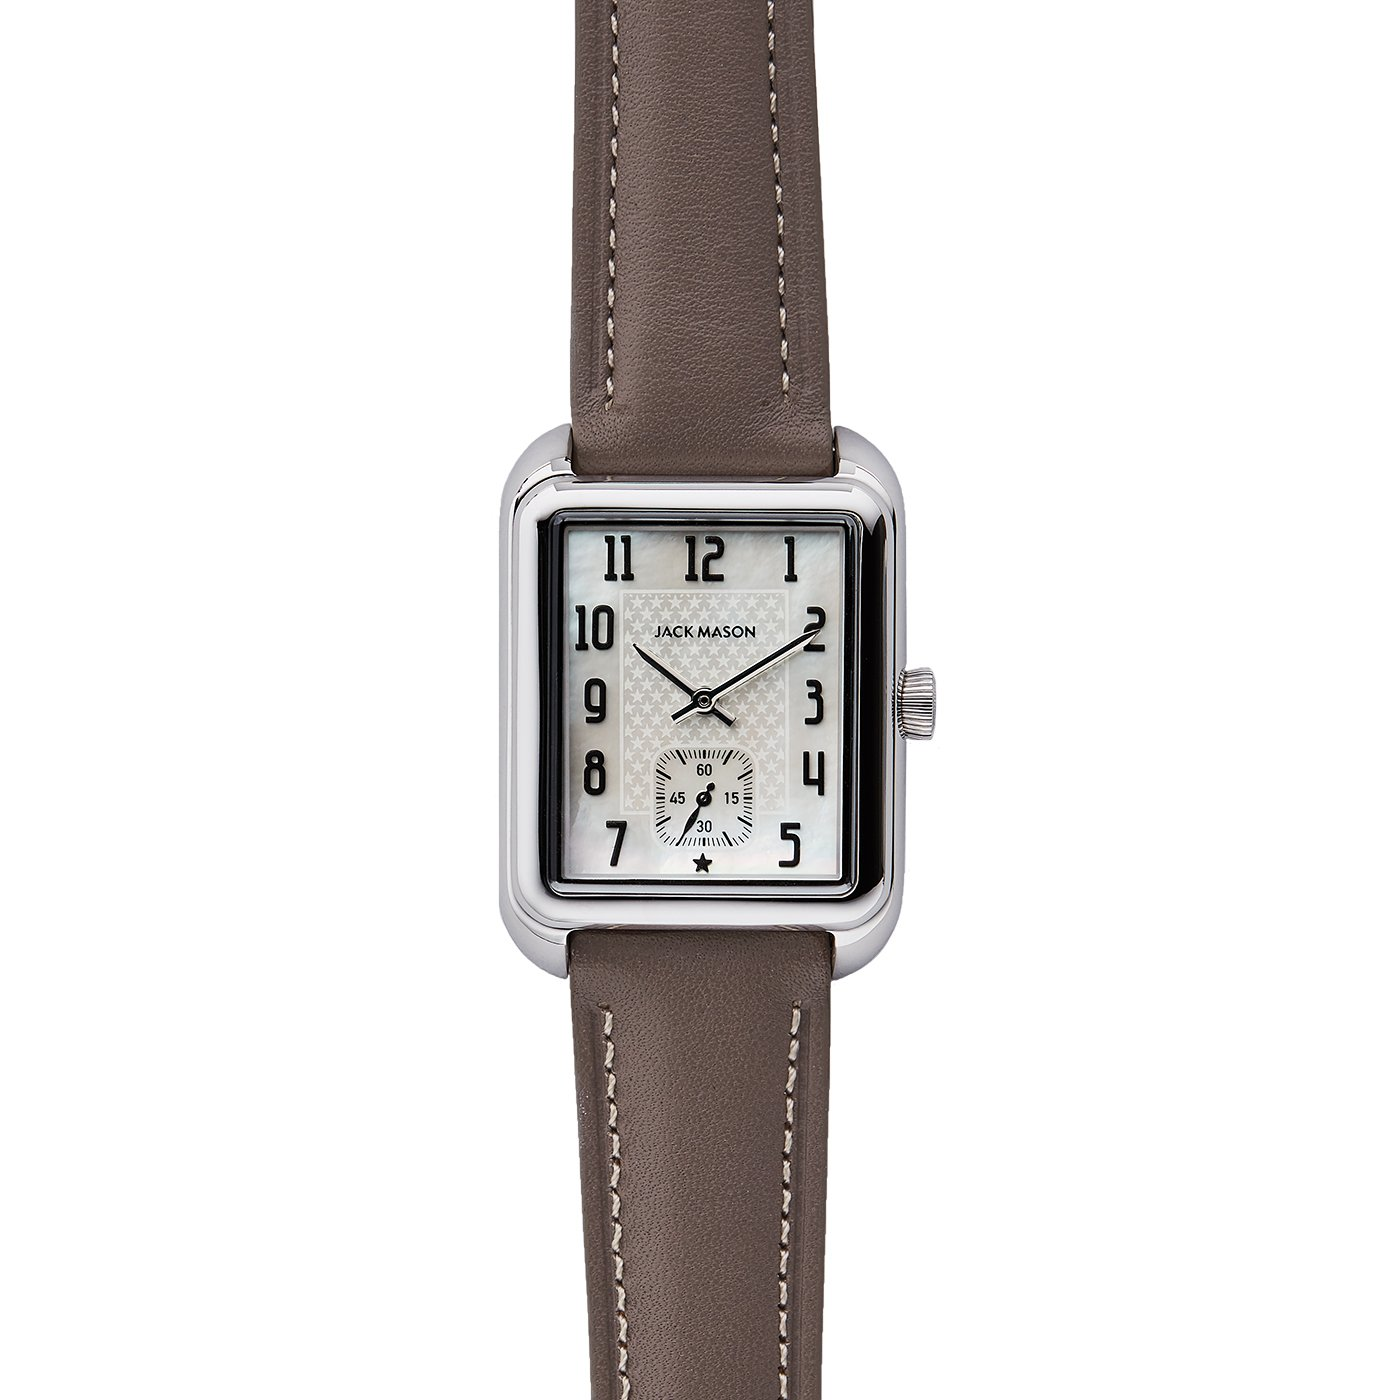 Jack Mason Women's Watch Issue No 2 SS Sub Second MOP Dial Taupe Leather Strap